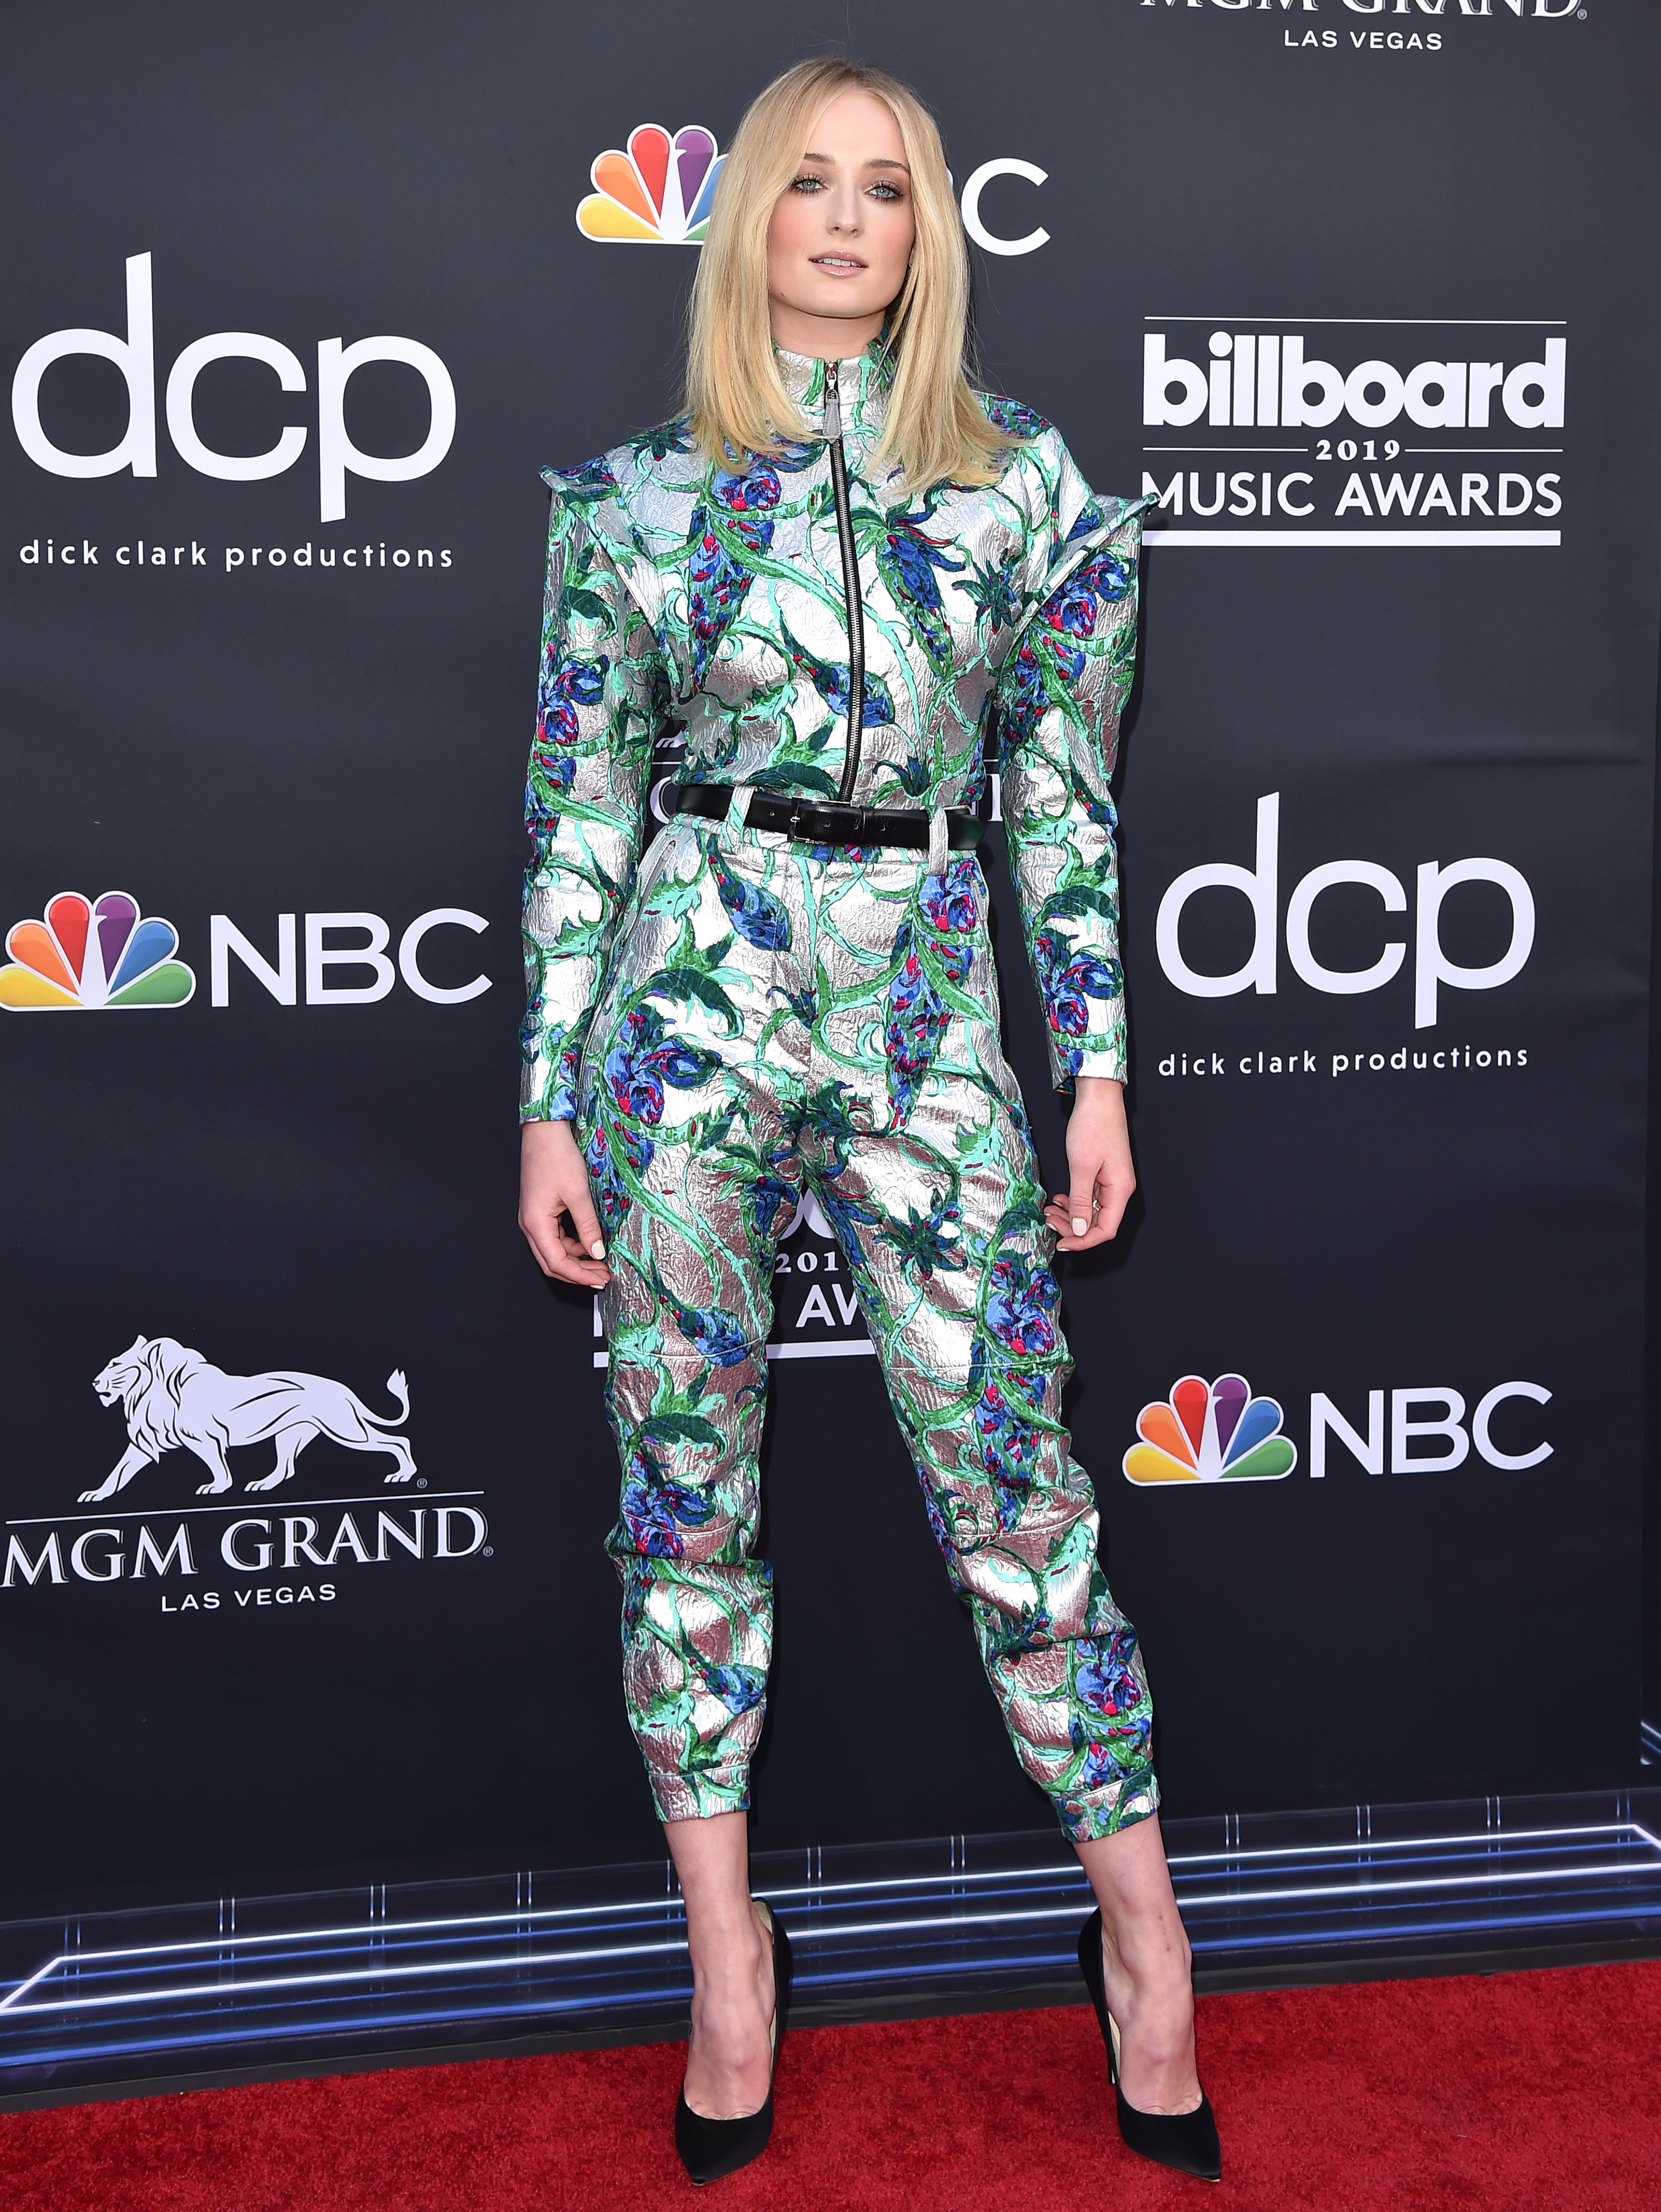 alfombra roja, vestido, red carpet, Billboard awards 2019, premios Billboard